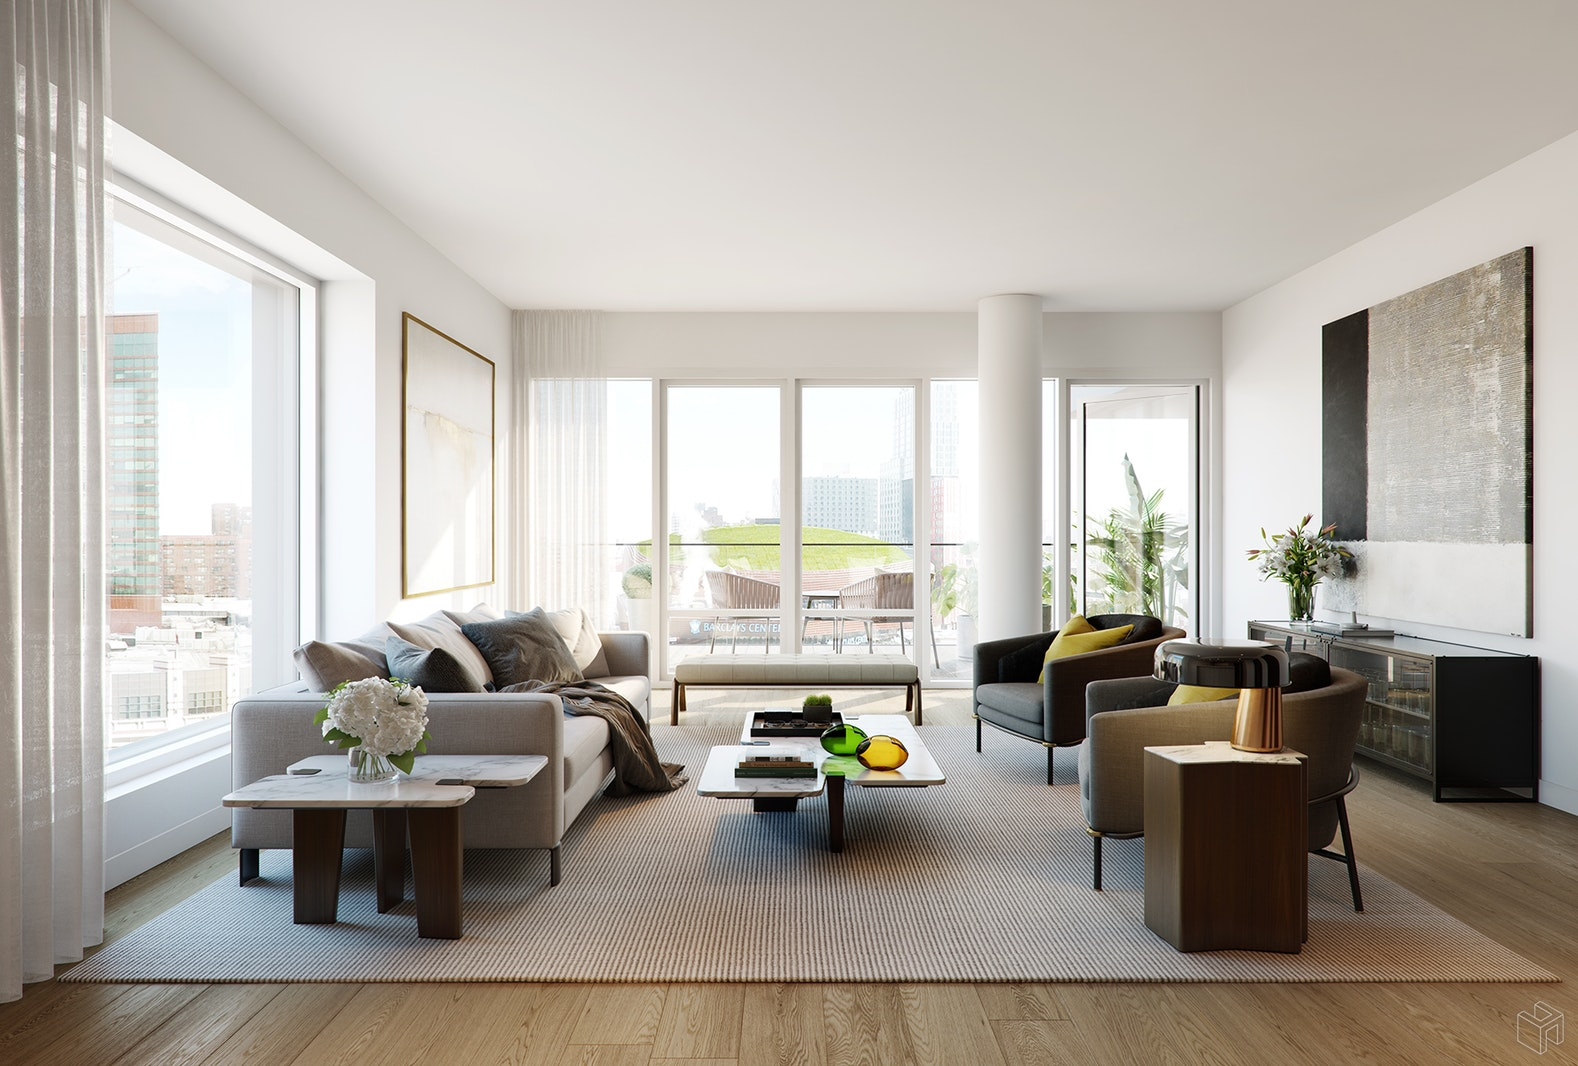 561 Pacific Street 601, Boerum Hill, Brooklyn, NY, 11217, $1,625,000, Property For Sale, Halstead Real Estate, Photo 1